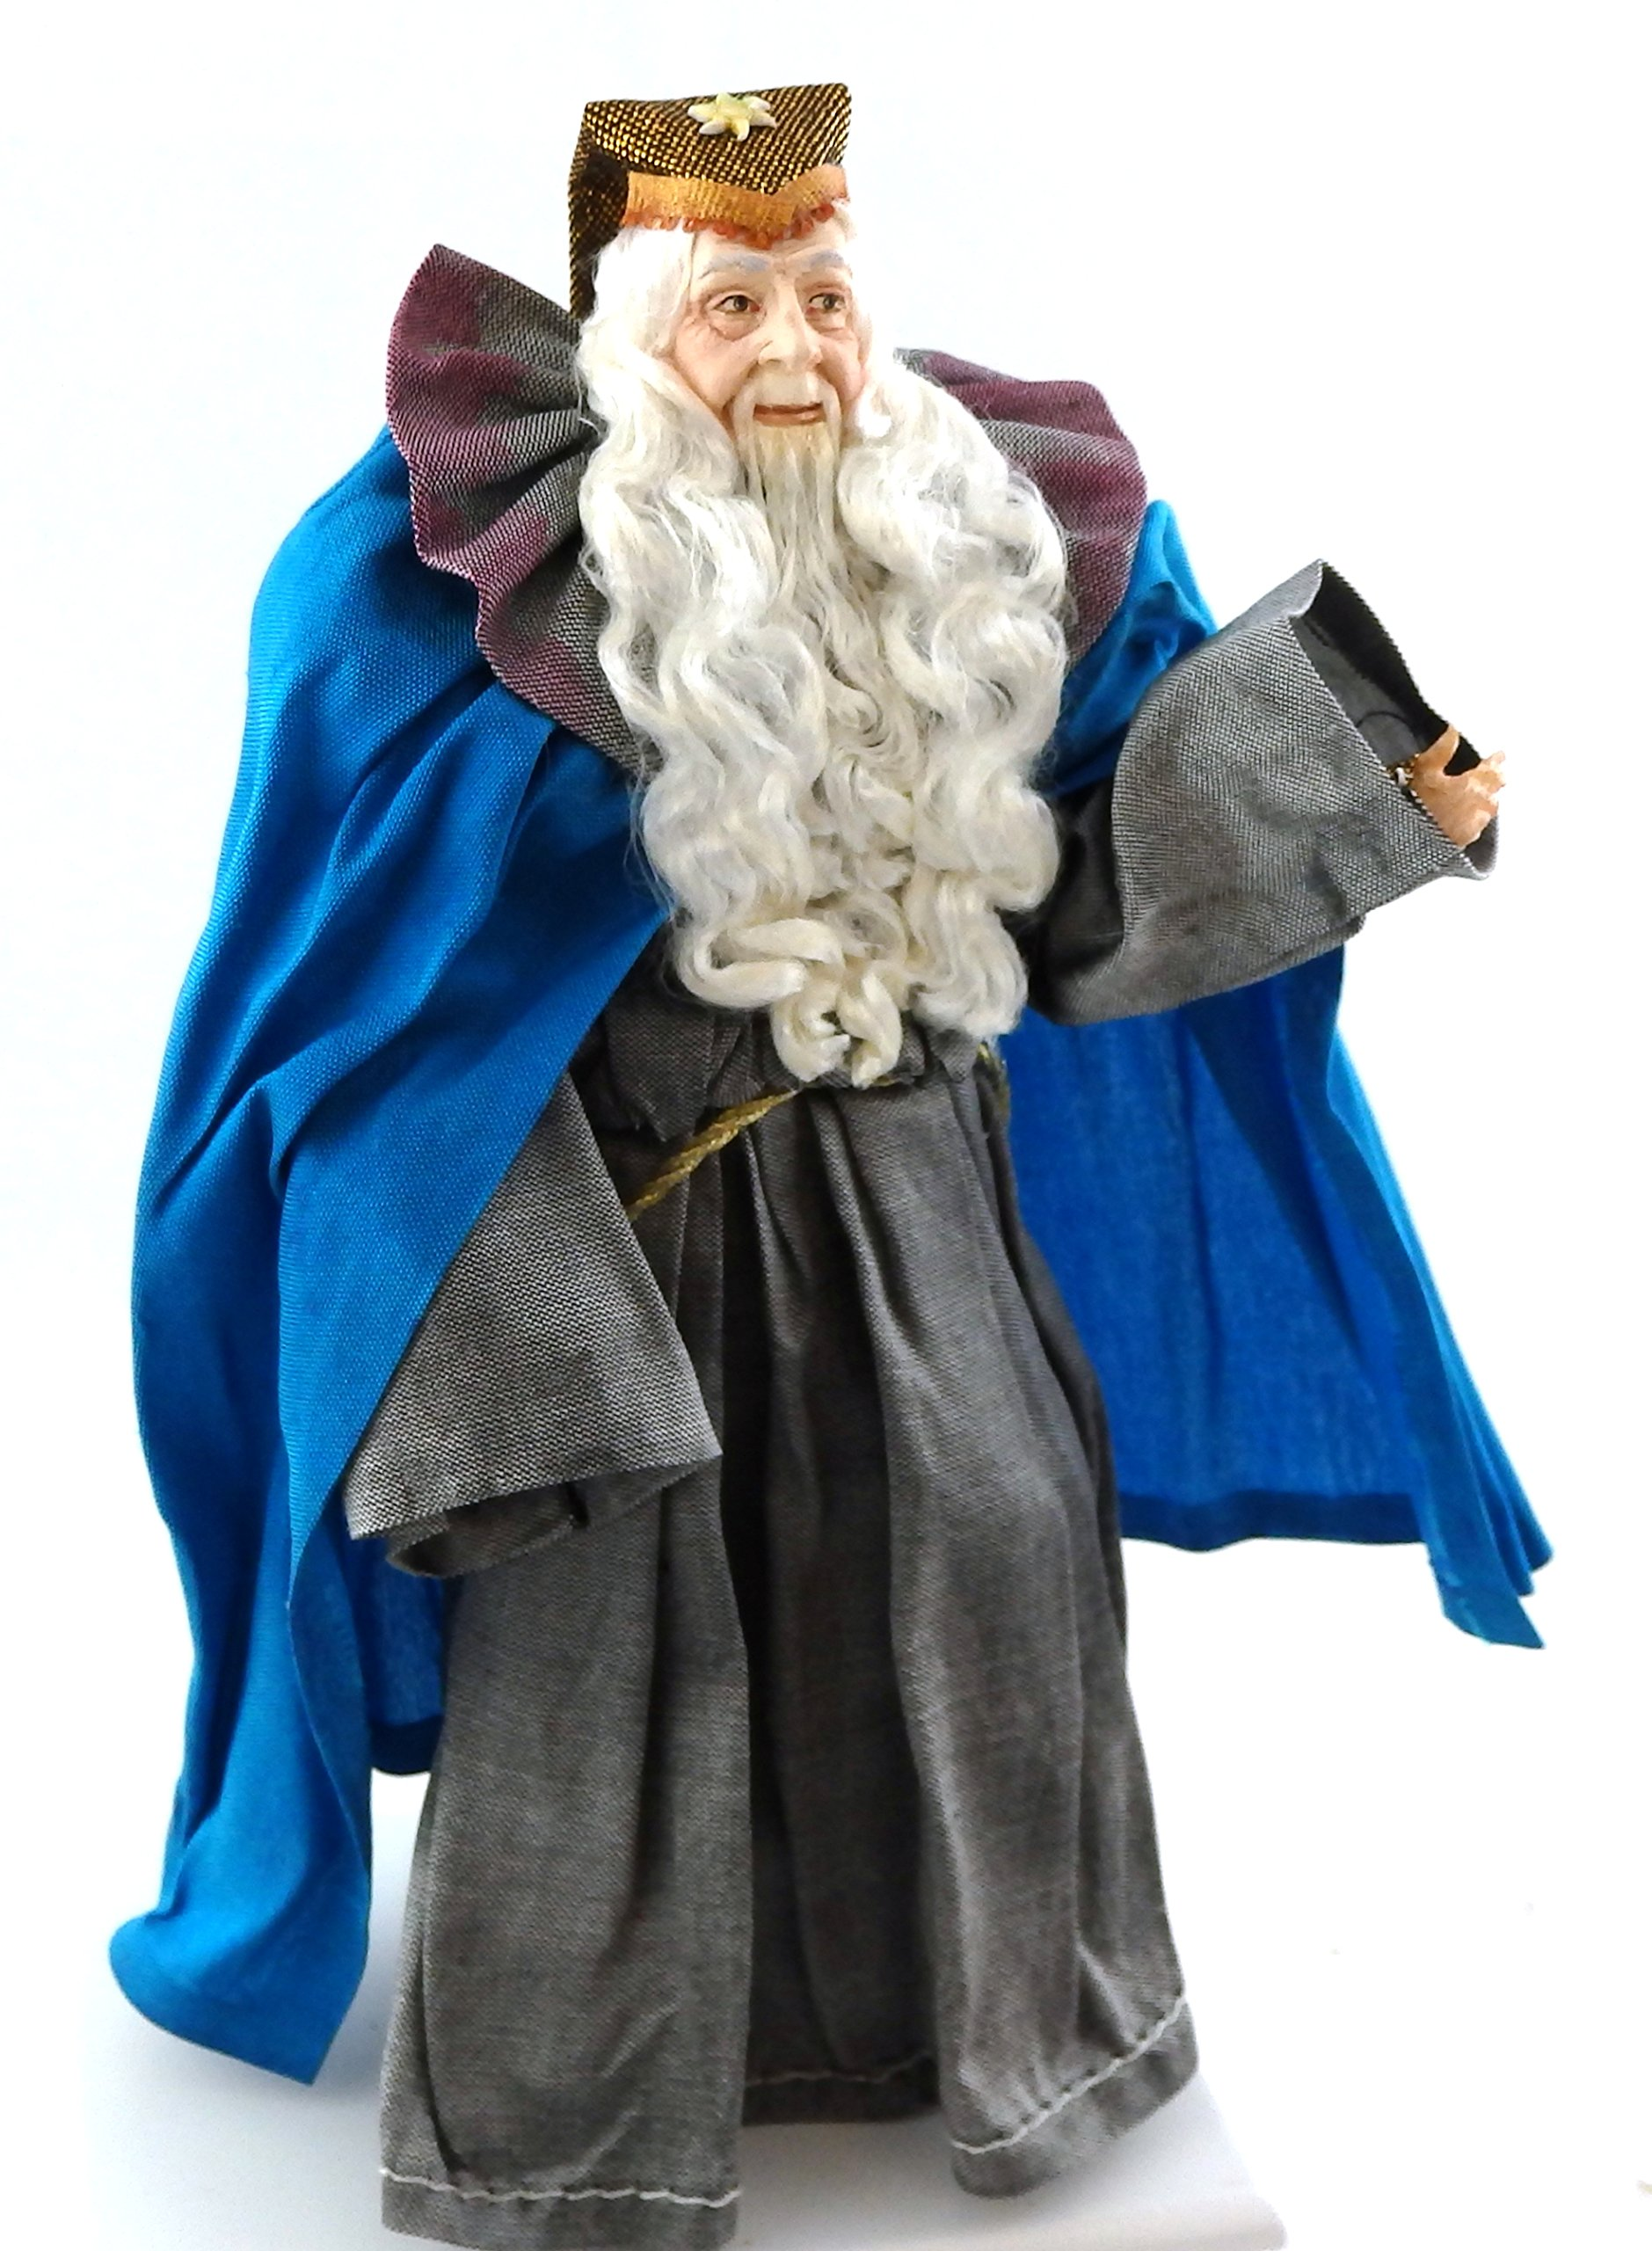 Melody Jane Dolls Houses Falcon Miniature People 1:12 Polyresin Figure Merlin the Wizard